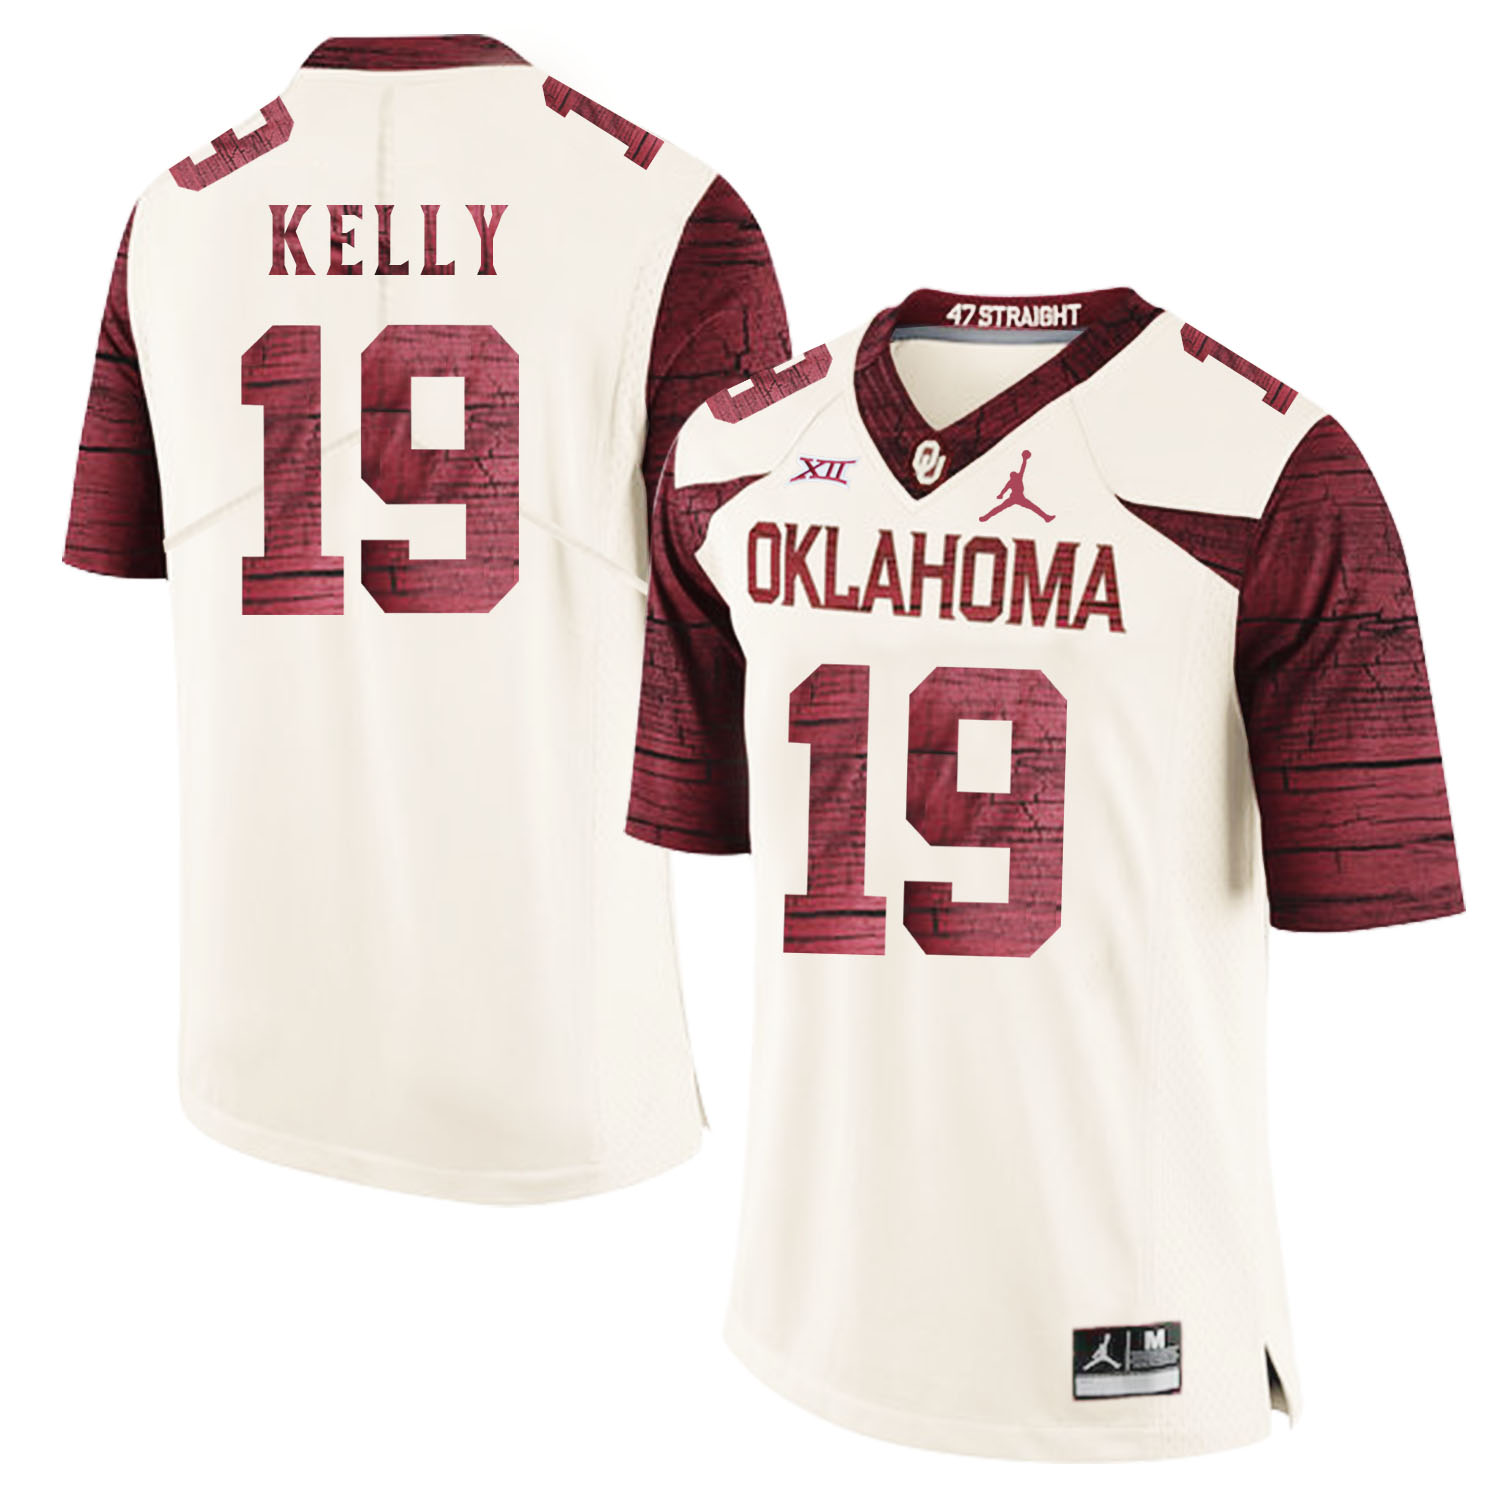 Oklahoma Sooners 19 Caleb Kelly White 47 Game Winning Streak College Football Jersey